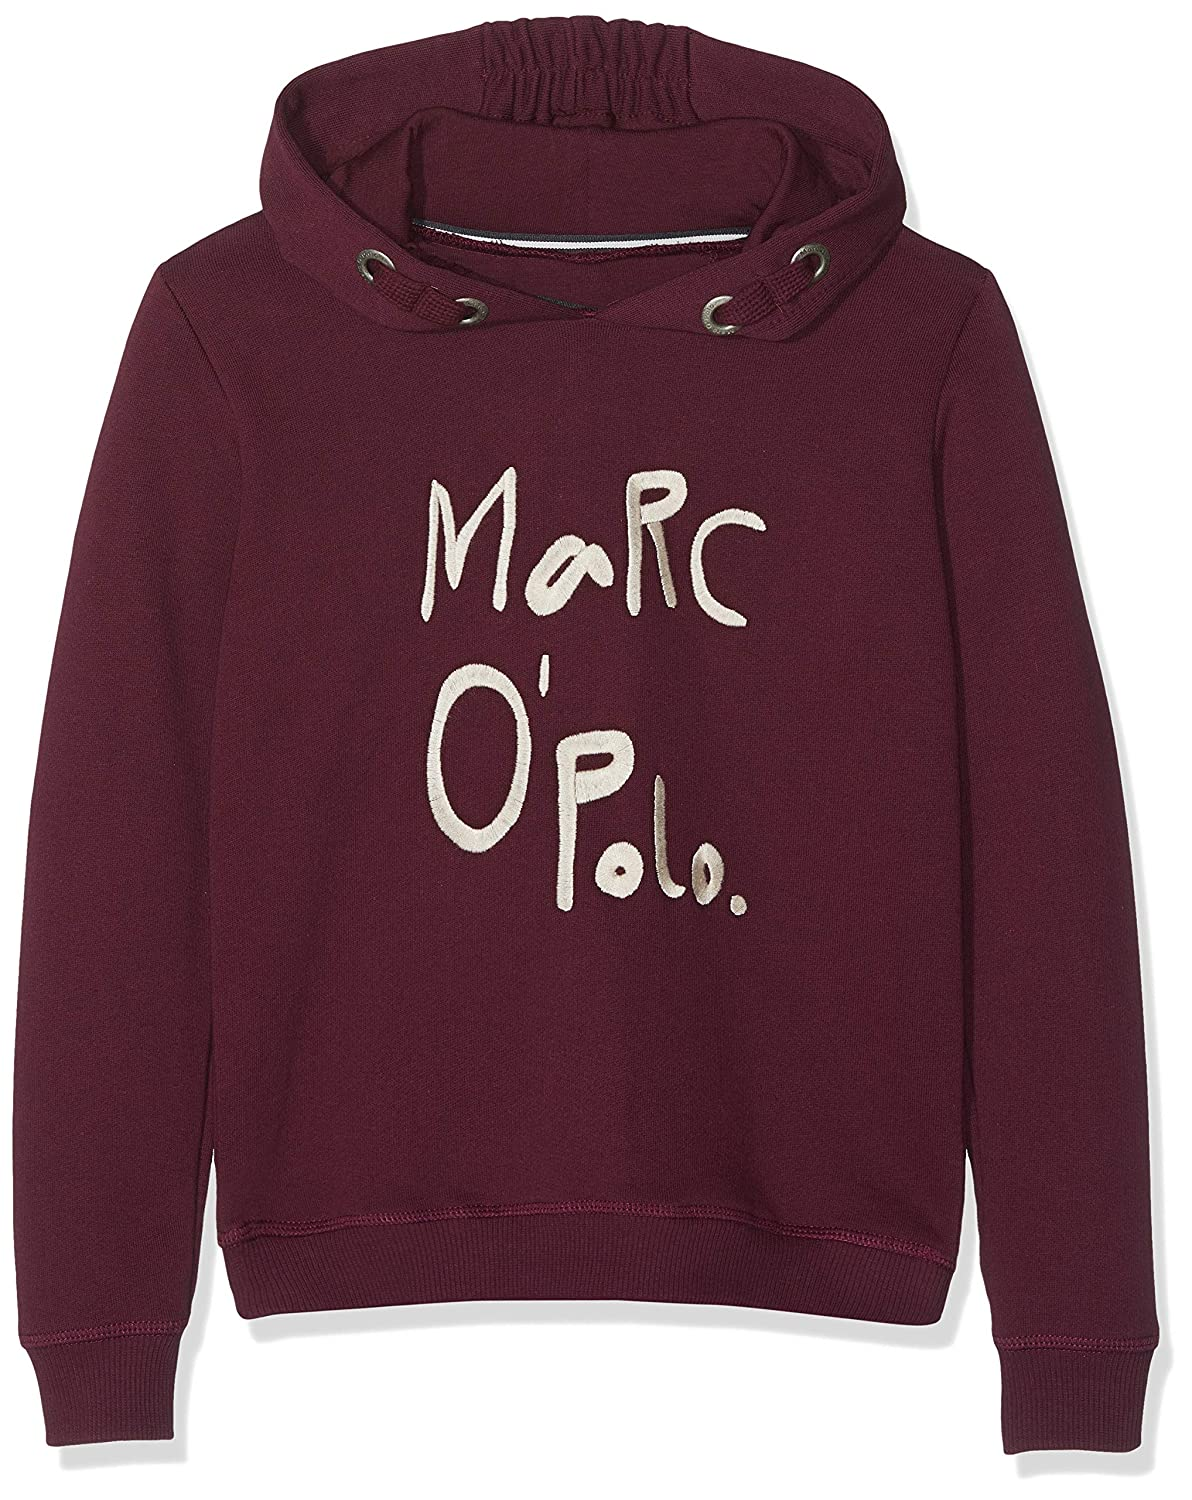 Violet (Pickled Beet violet 7044) 5 ans Marc O' Polo Enfants Sweat-Shirt Fille